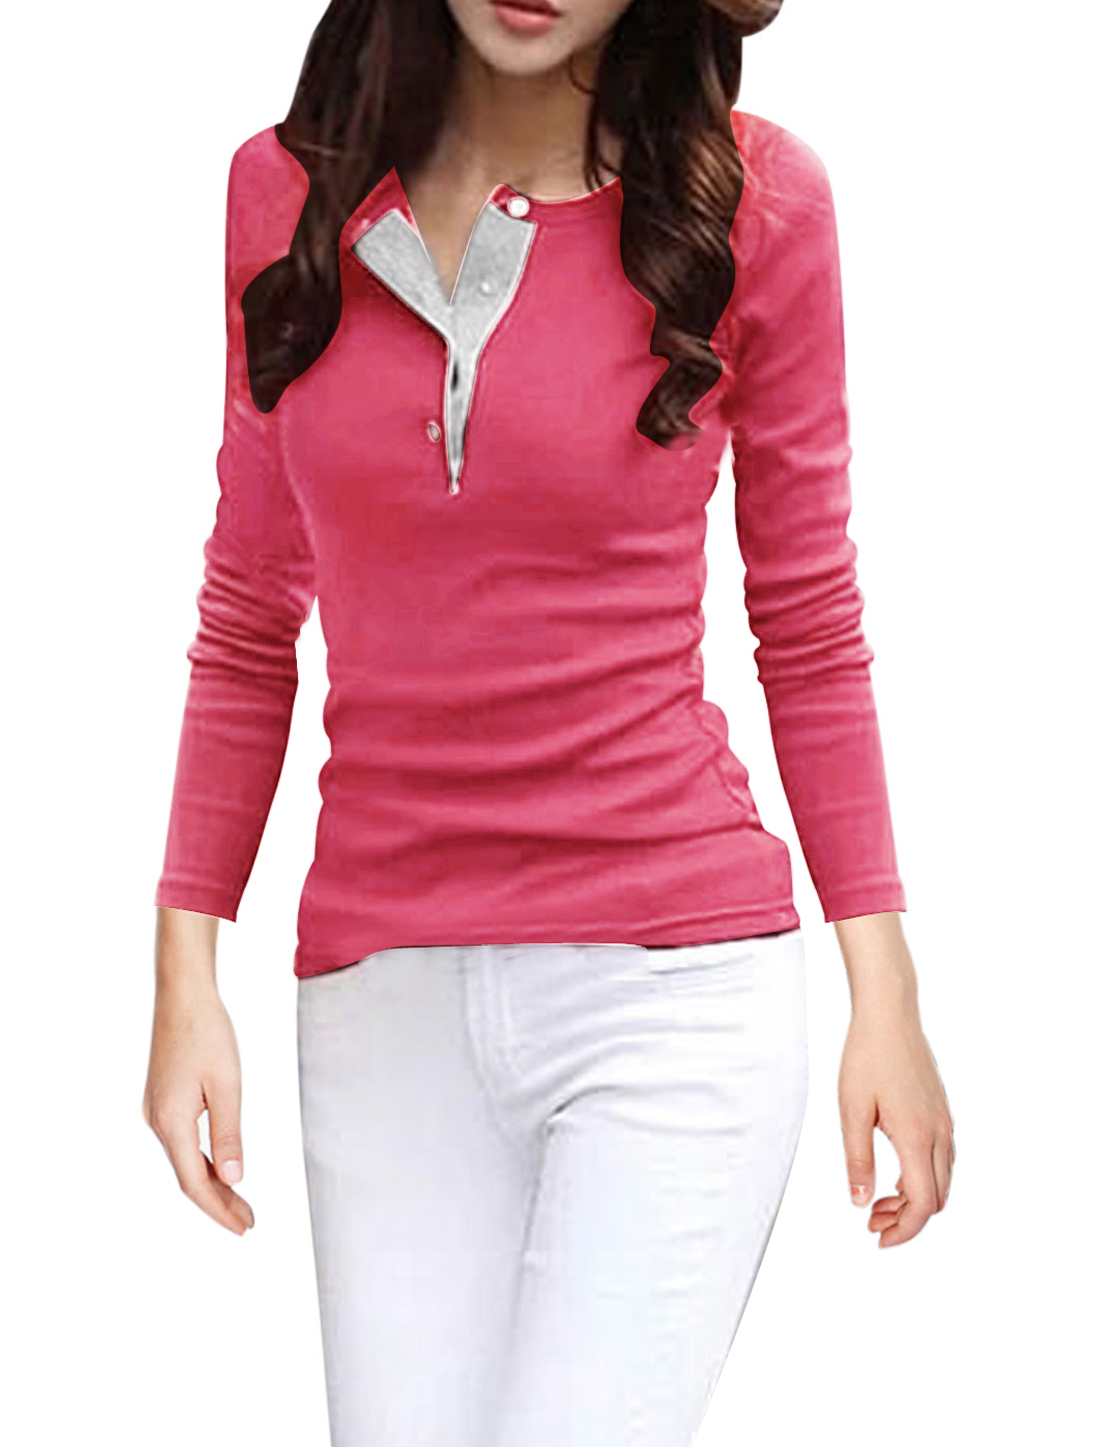 Button Closure Upper Round Neck Fuchsia Shirts for Women M